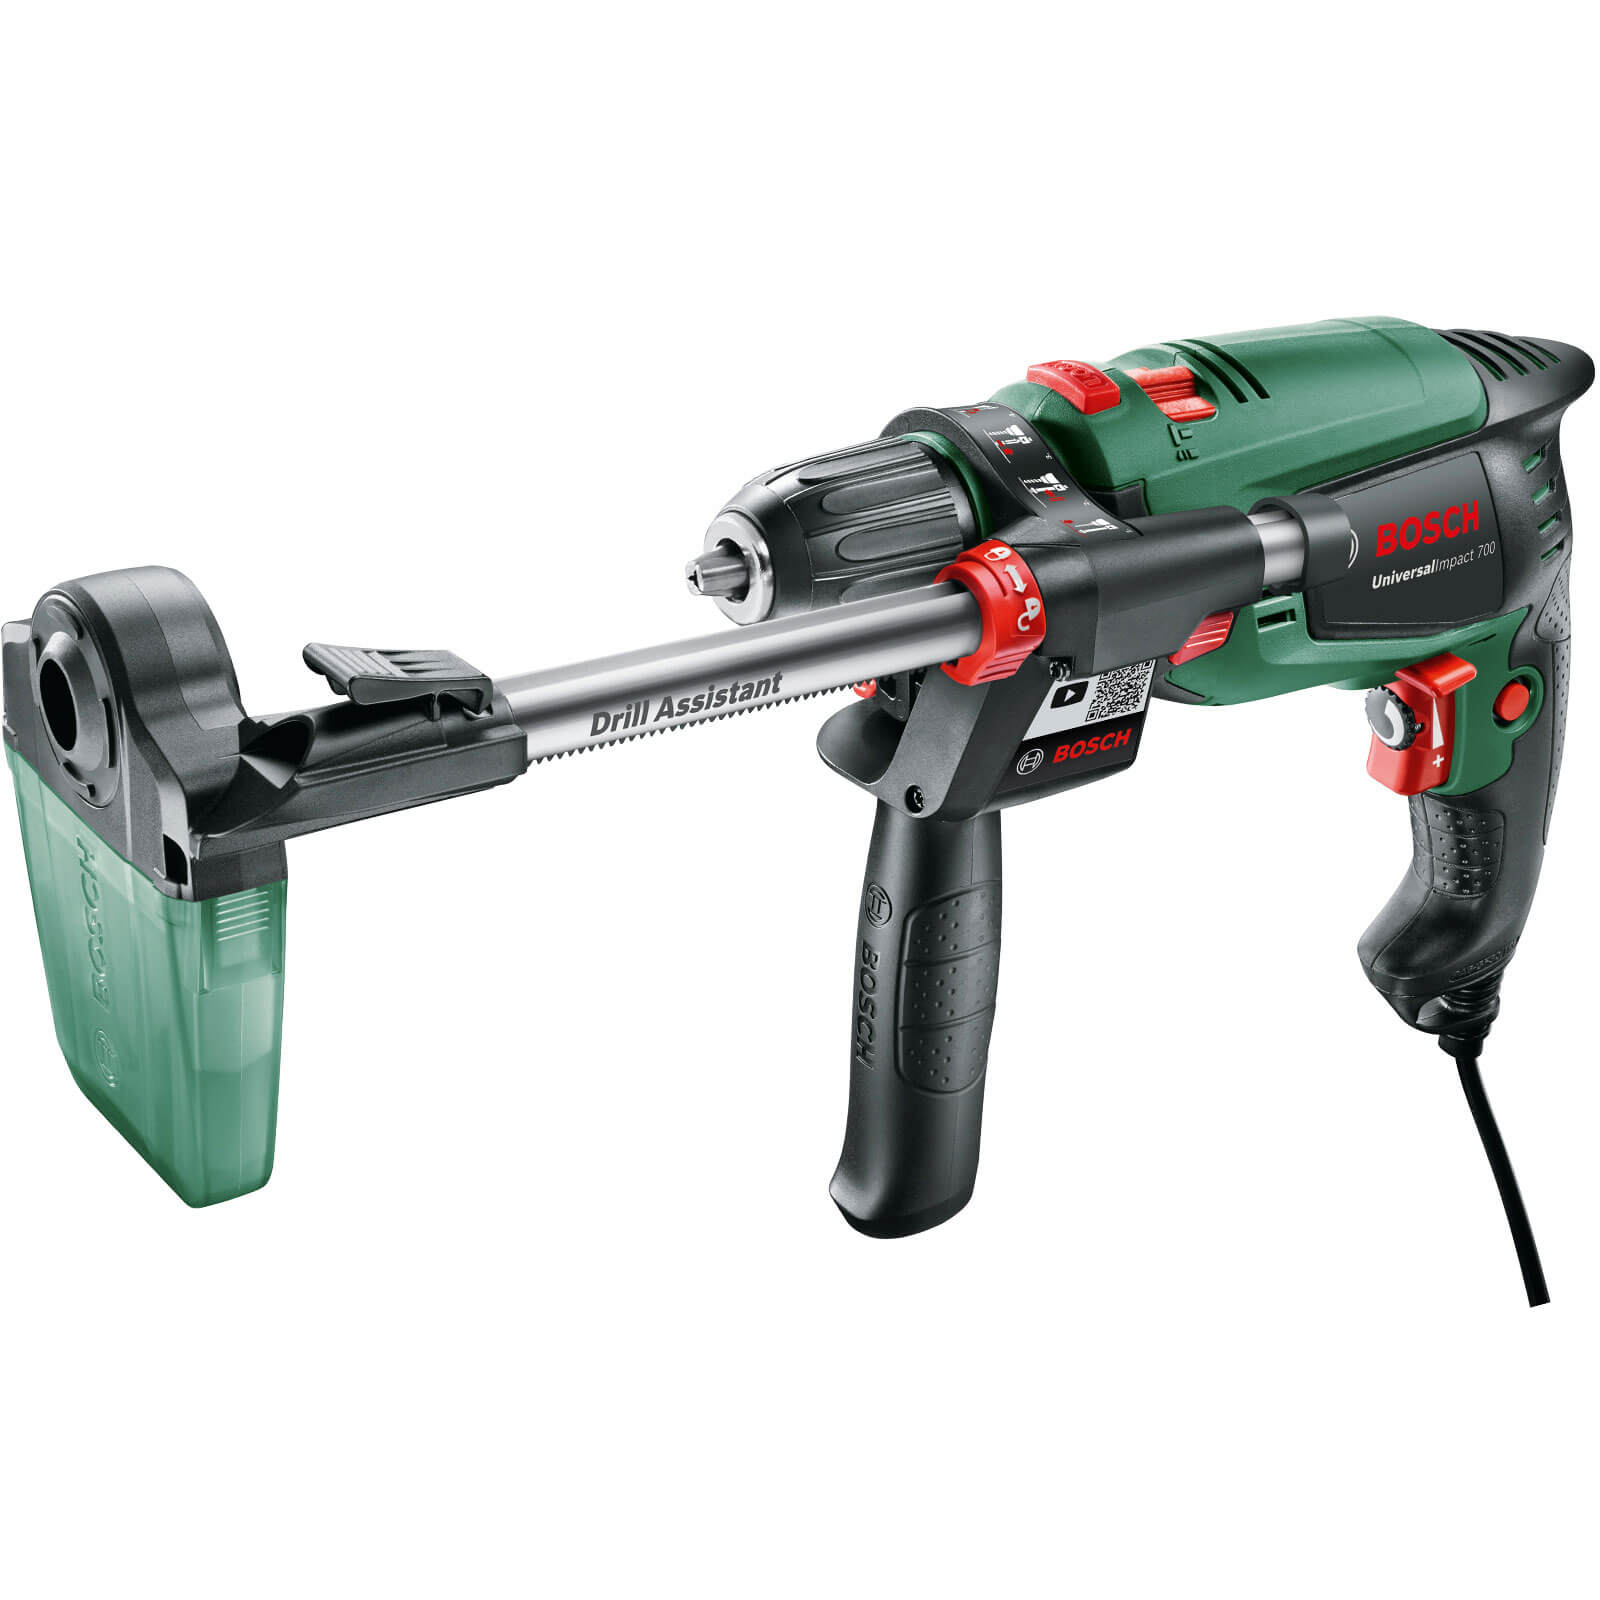 Bosch UNIVERSALIMPACT 700 Hammer Drill with Drill Assistant 240v